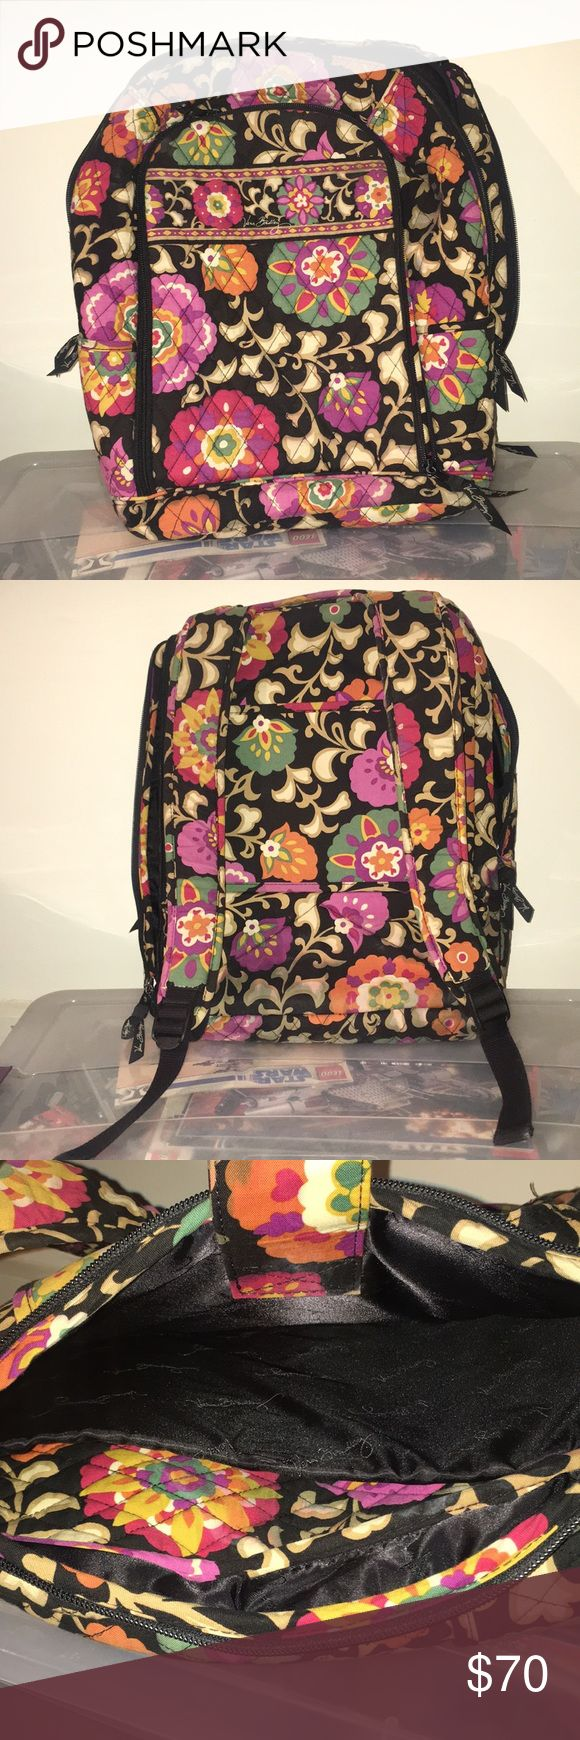 Vera Bradley back pack Large main inside zip-up pocket. Hidden back zip-up pocket with a laptop compartment and extra space. Front smaller pocket with several different compartments for change, credit cards, etc. Adjustable straps. This pattern is no longer available on the Vera Bradley website or in stores. Barely used, only ever filled with school books and binders. Vera Bradley Bags Backpacks